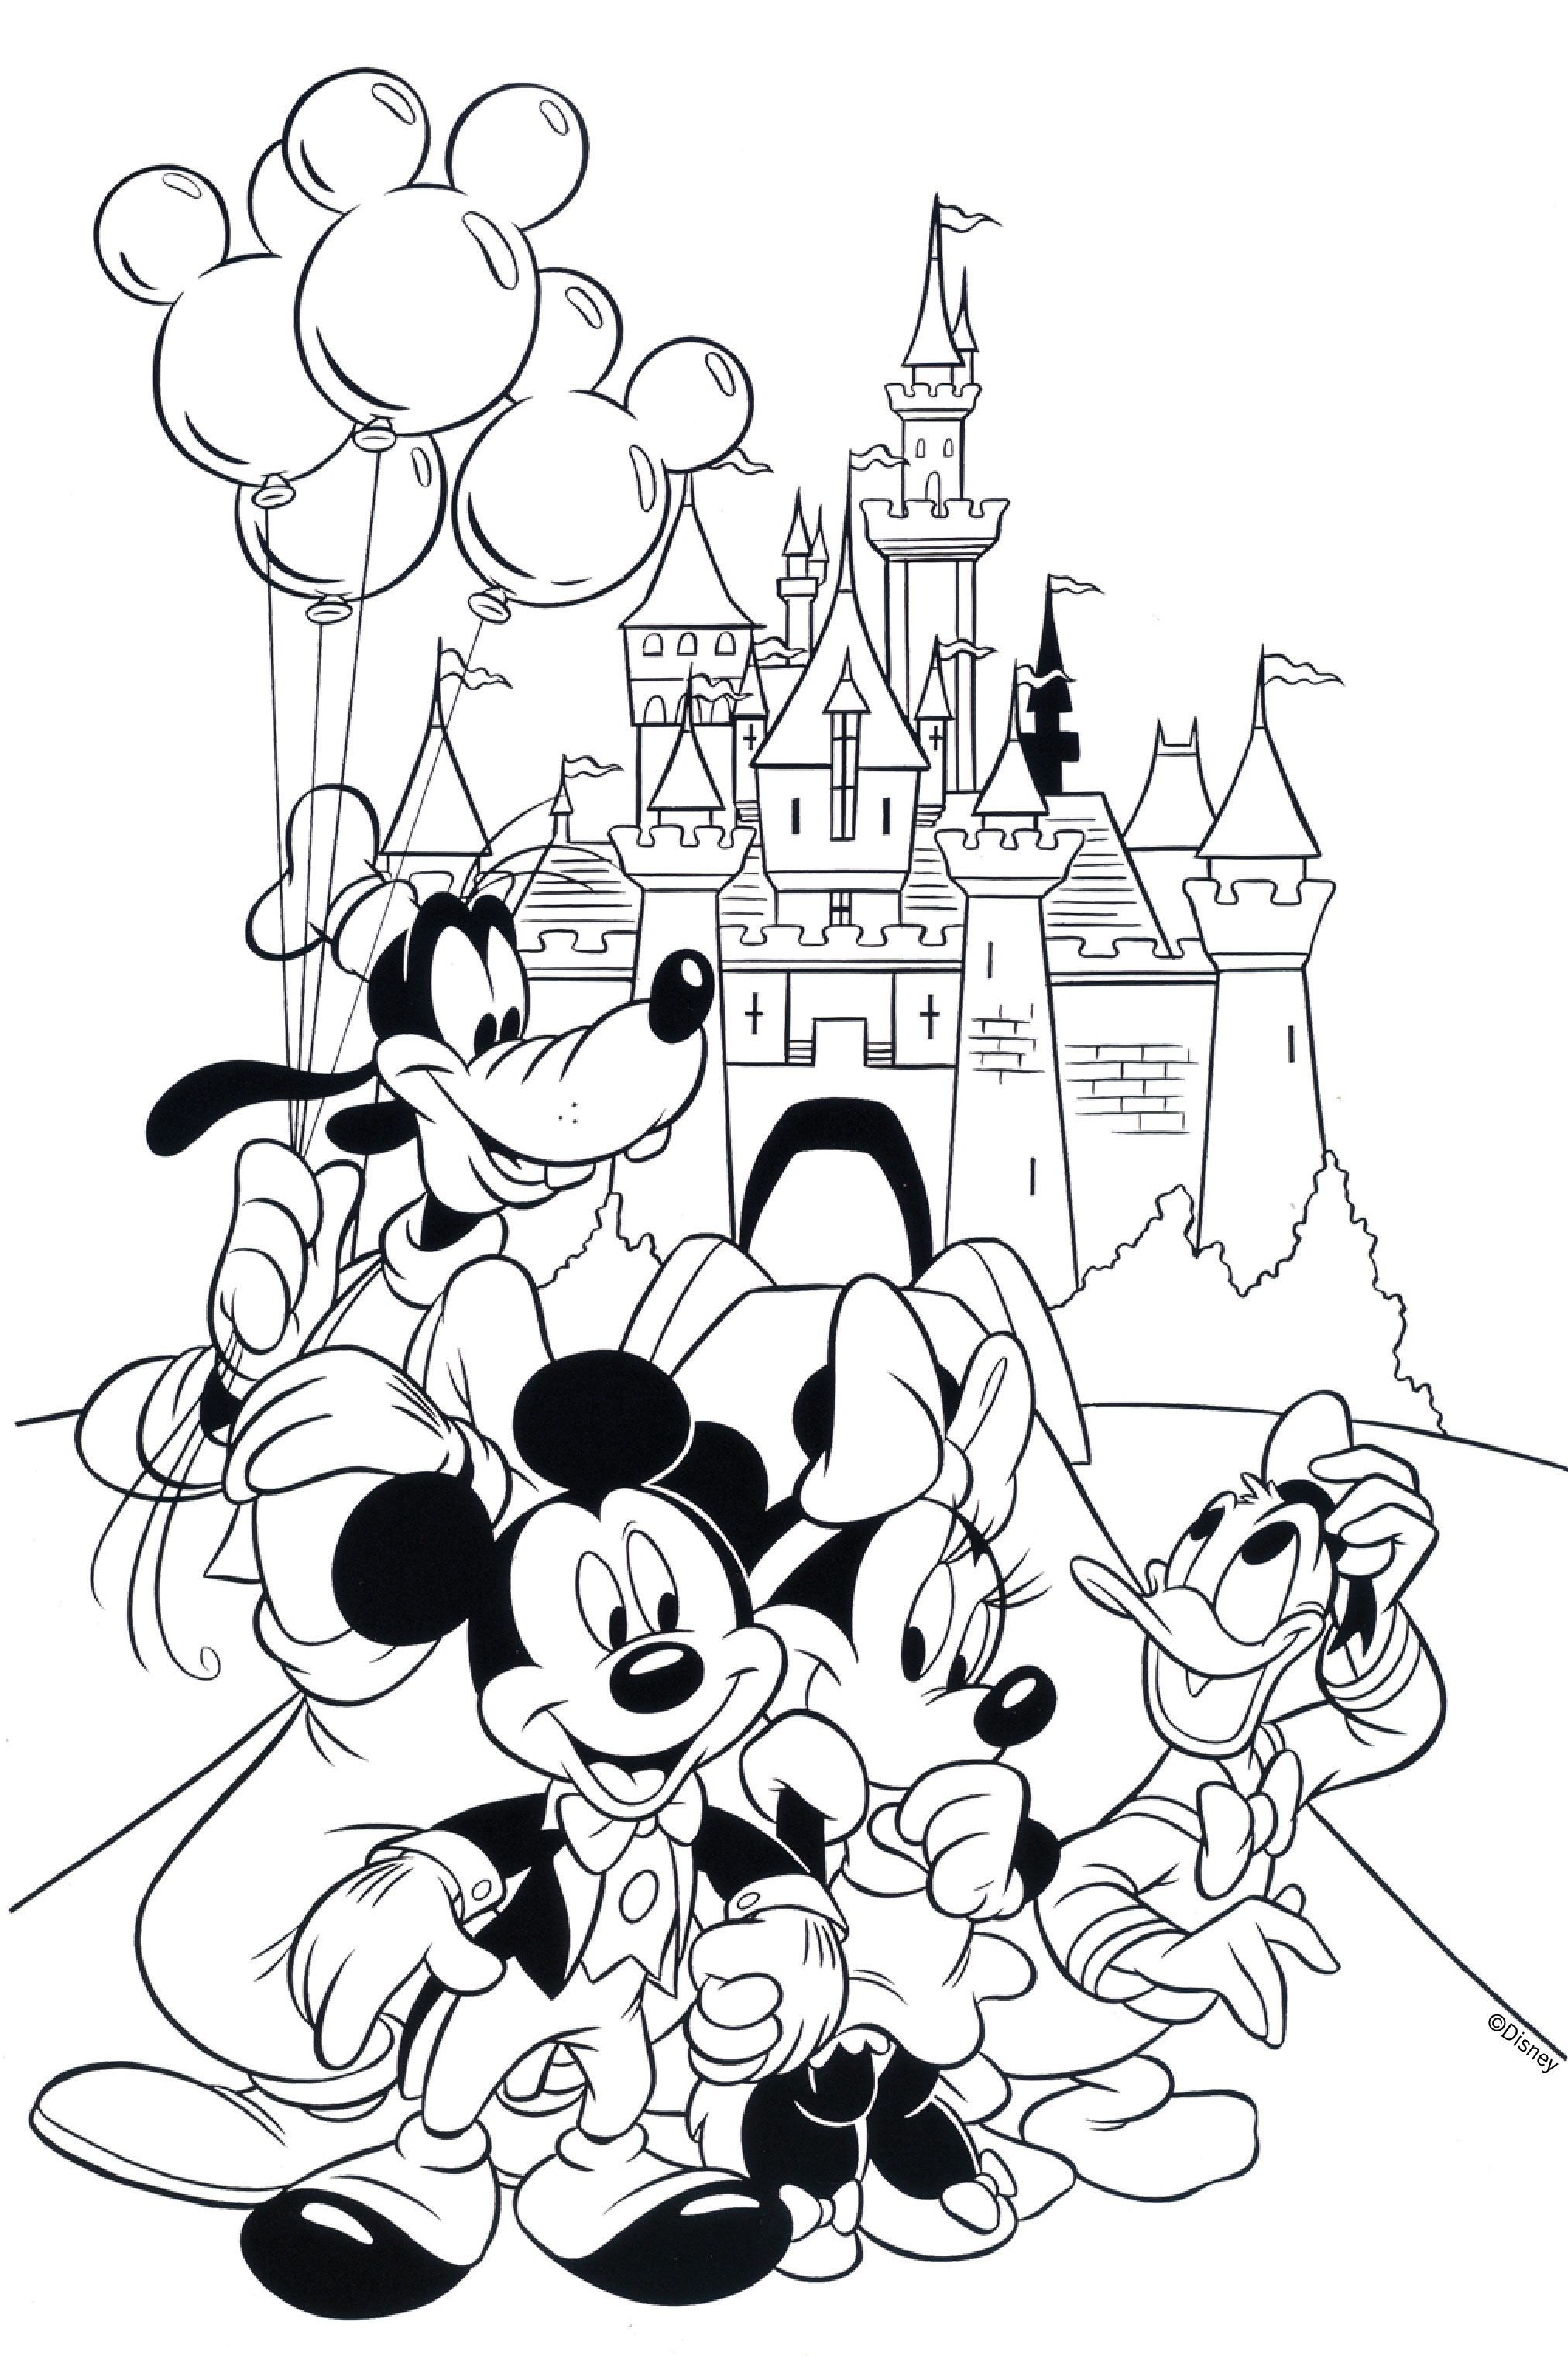 Disney Coloring Games Disney Channel Coloring Games Disney Coloring Games Disney Colorin Cartoon Coloring Pages Disney Coloring Pages Disney Coloring Sheets